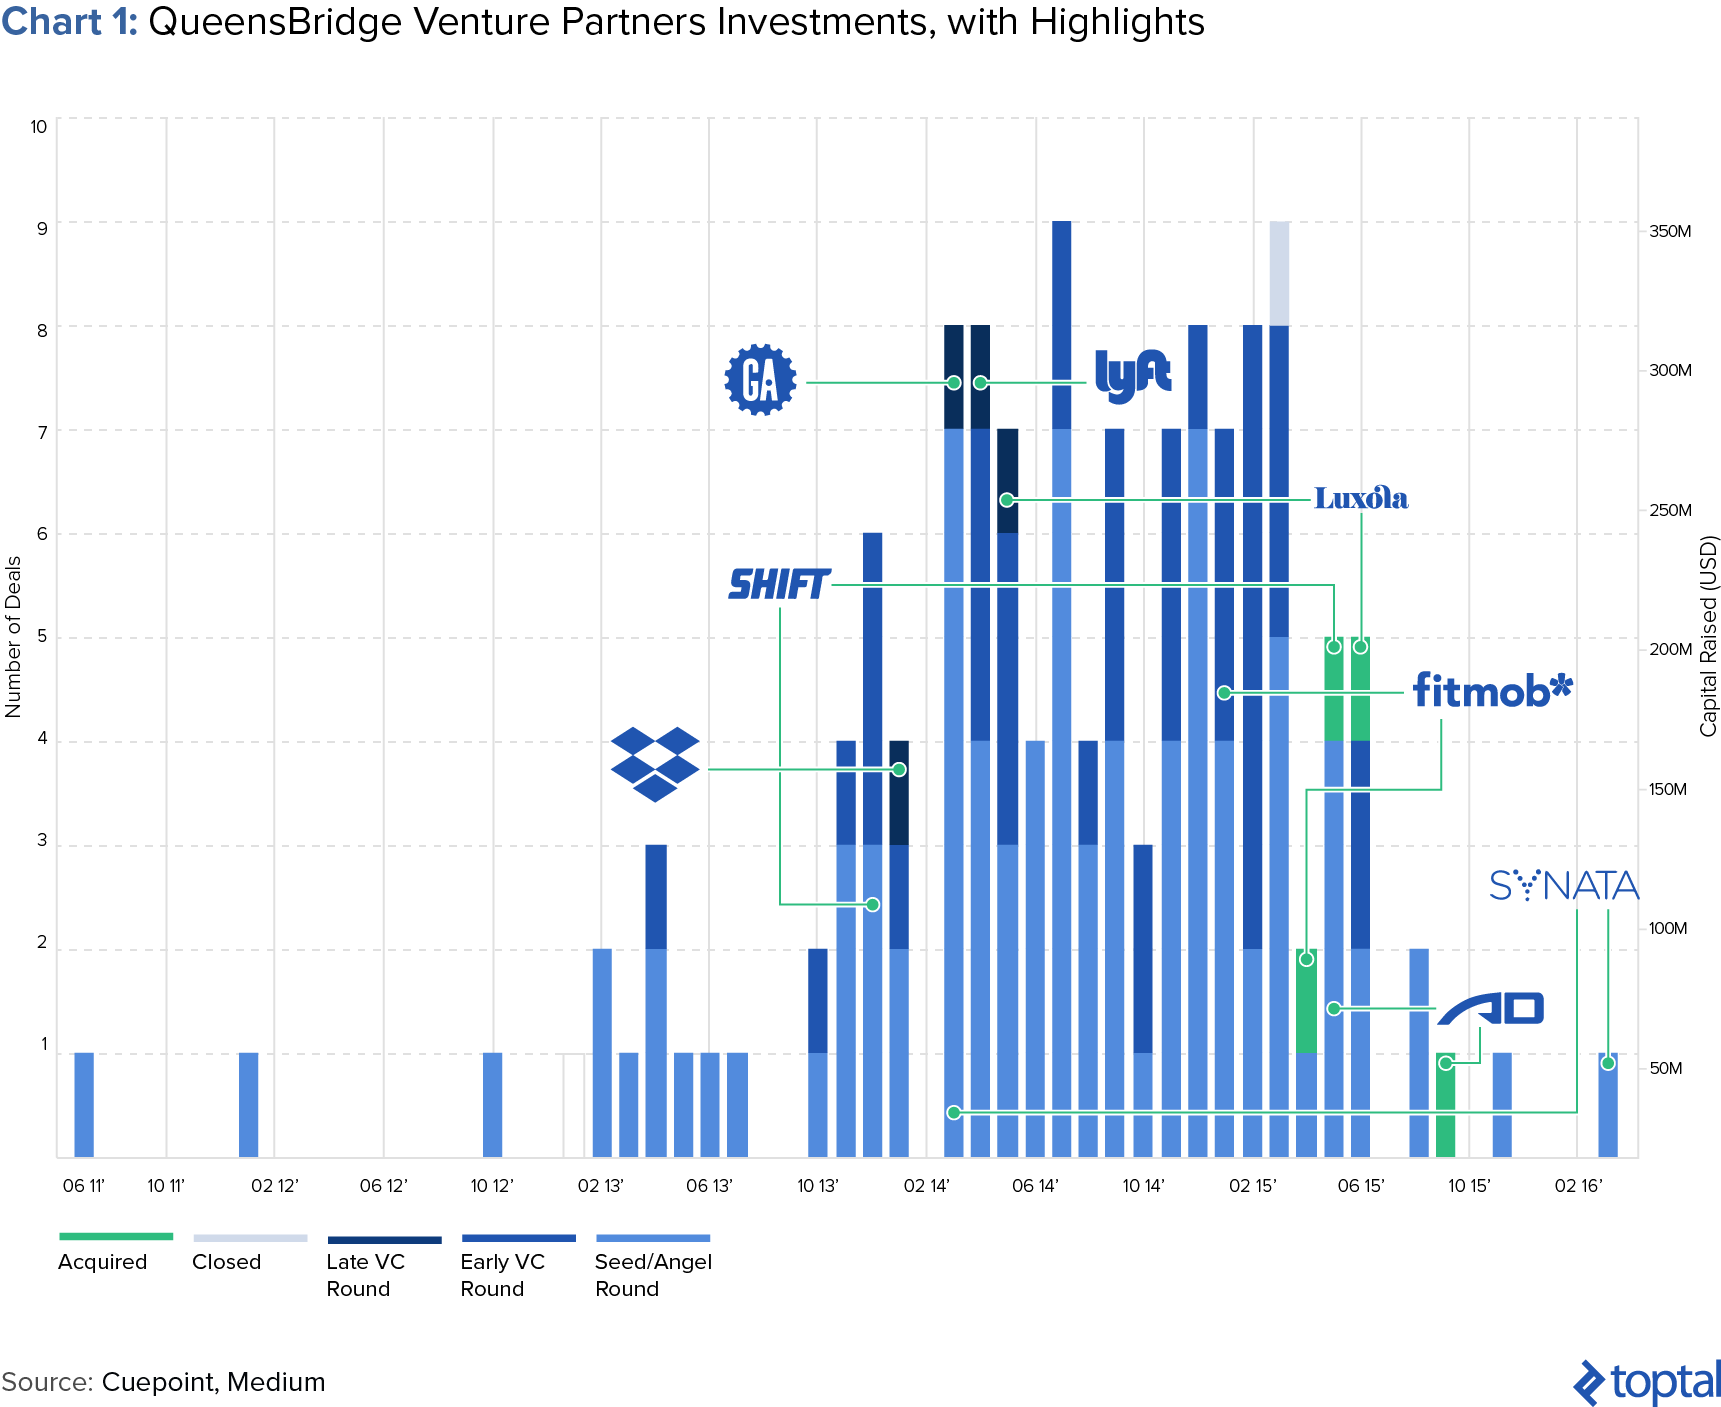 Chart 1: QueensBridge Venutre Partners Investments, with Highlights